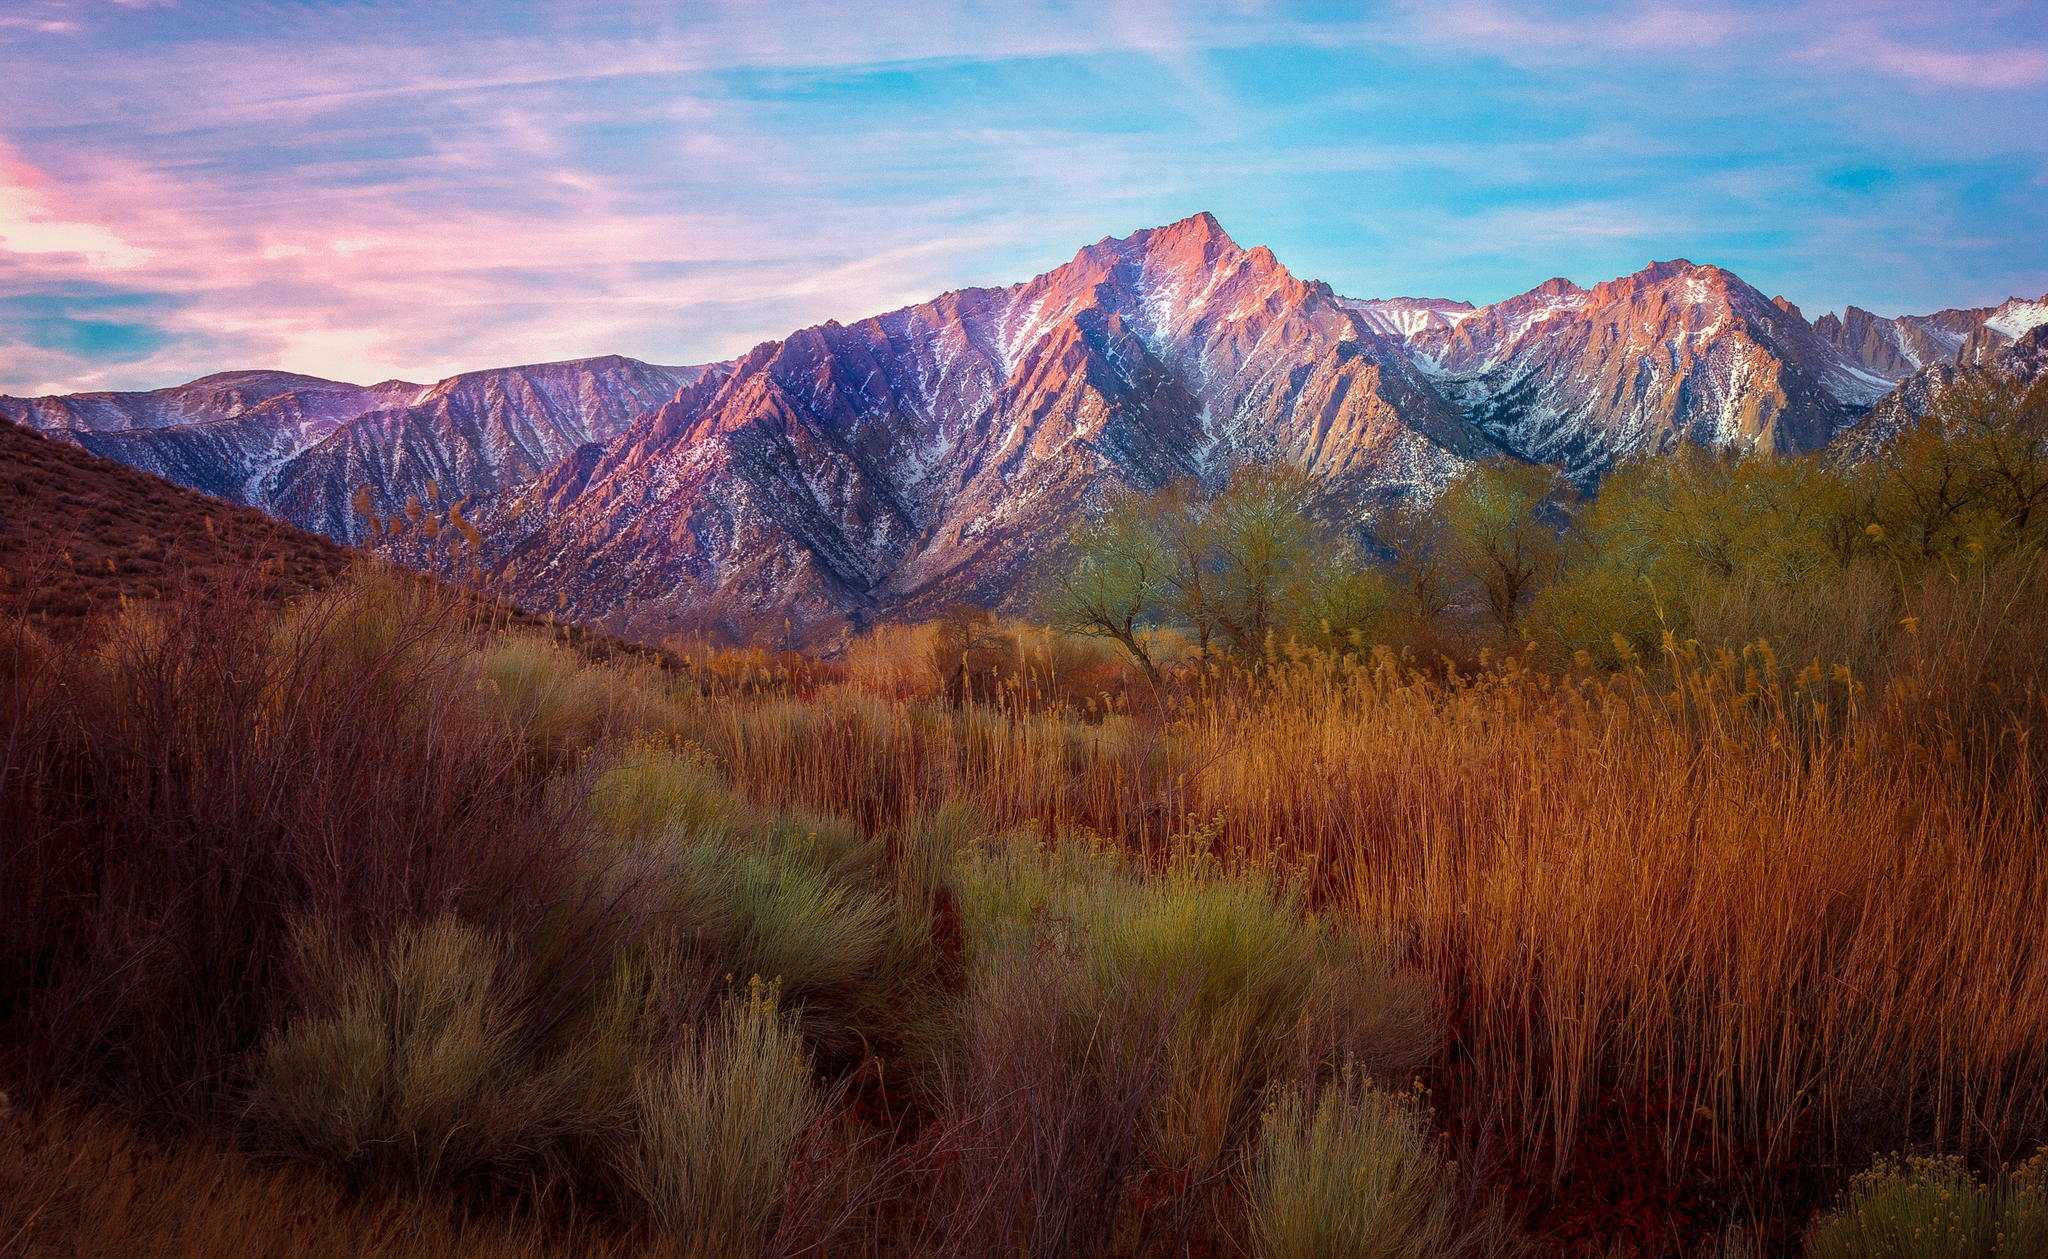 102123 download wallpaper Nature, Reeds, Grass, Sky, Mountains screensavers and pictures for free